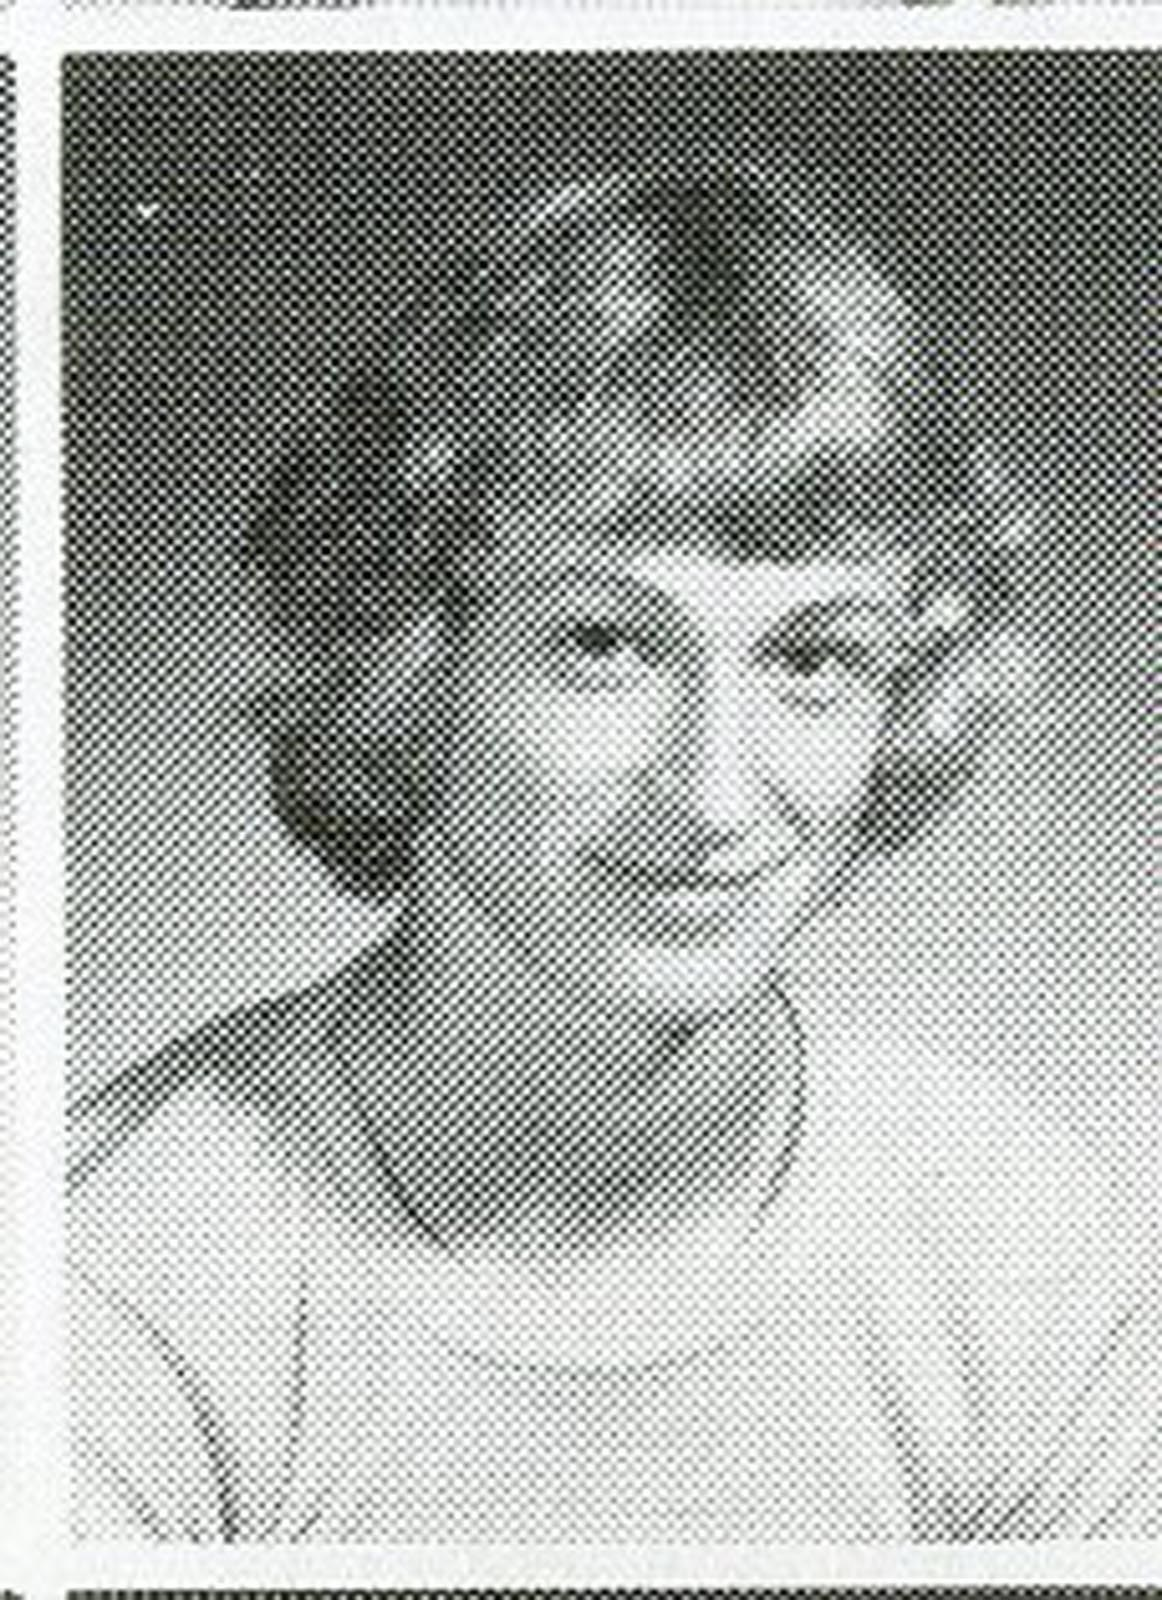 1977 Wayne Gretzky High School Yearbook